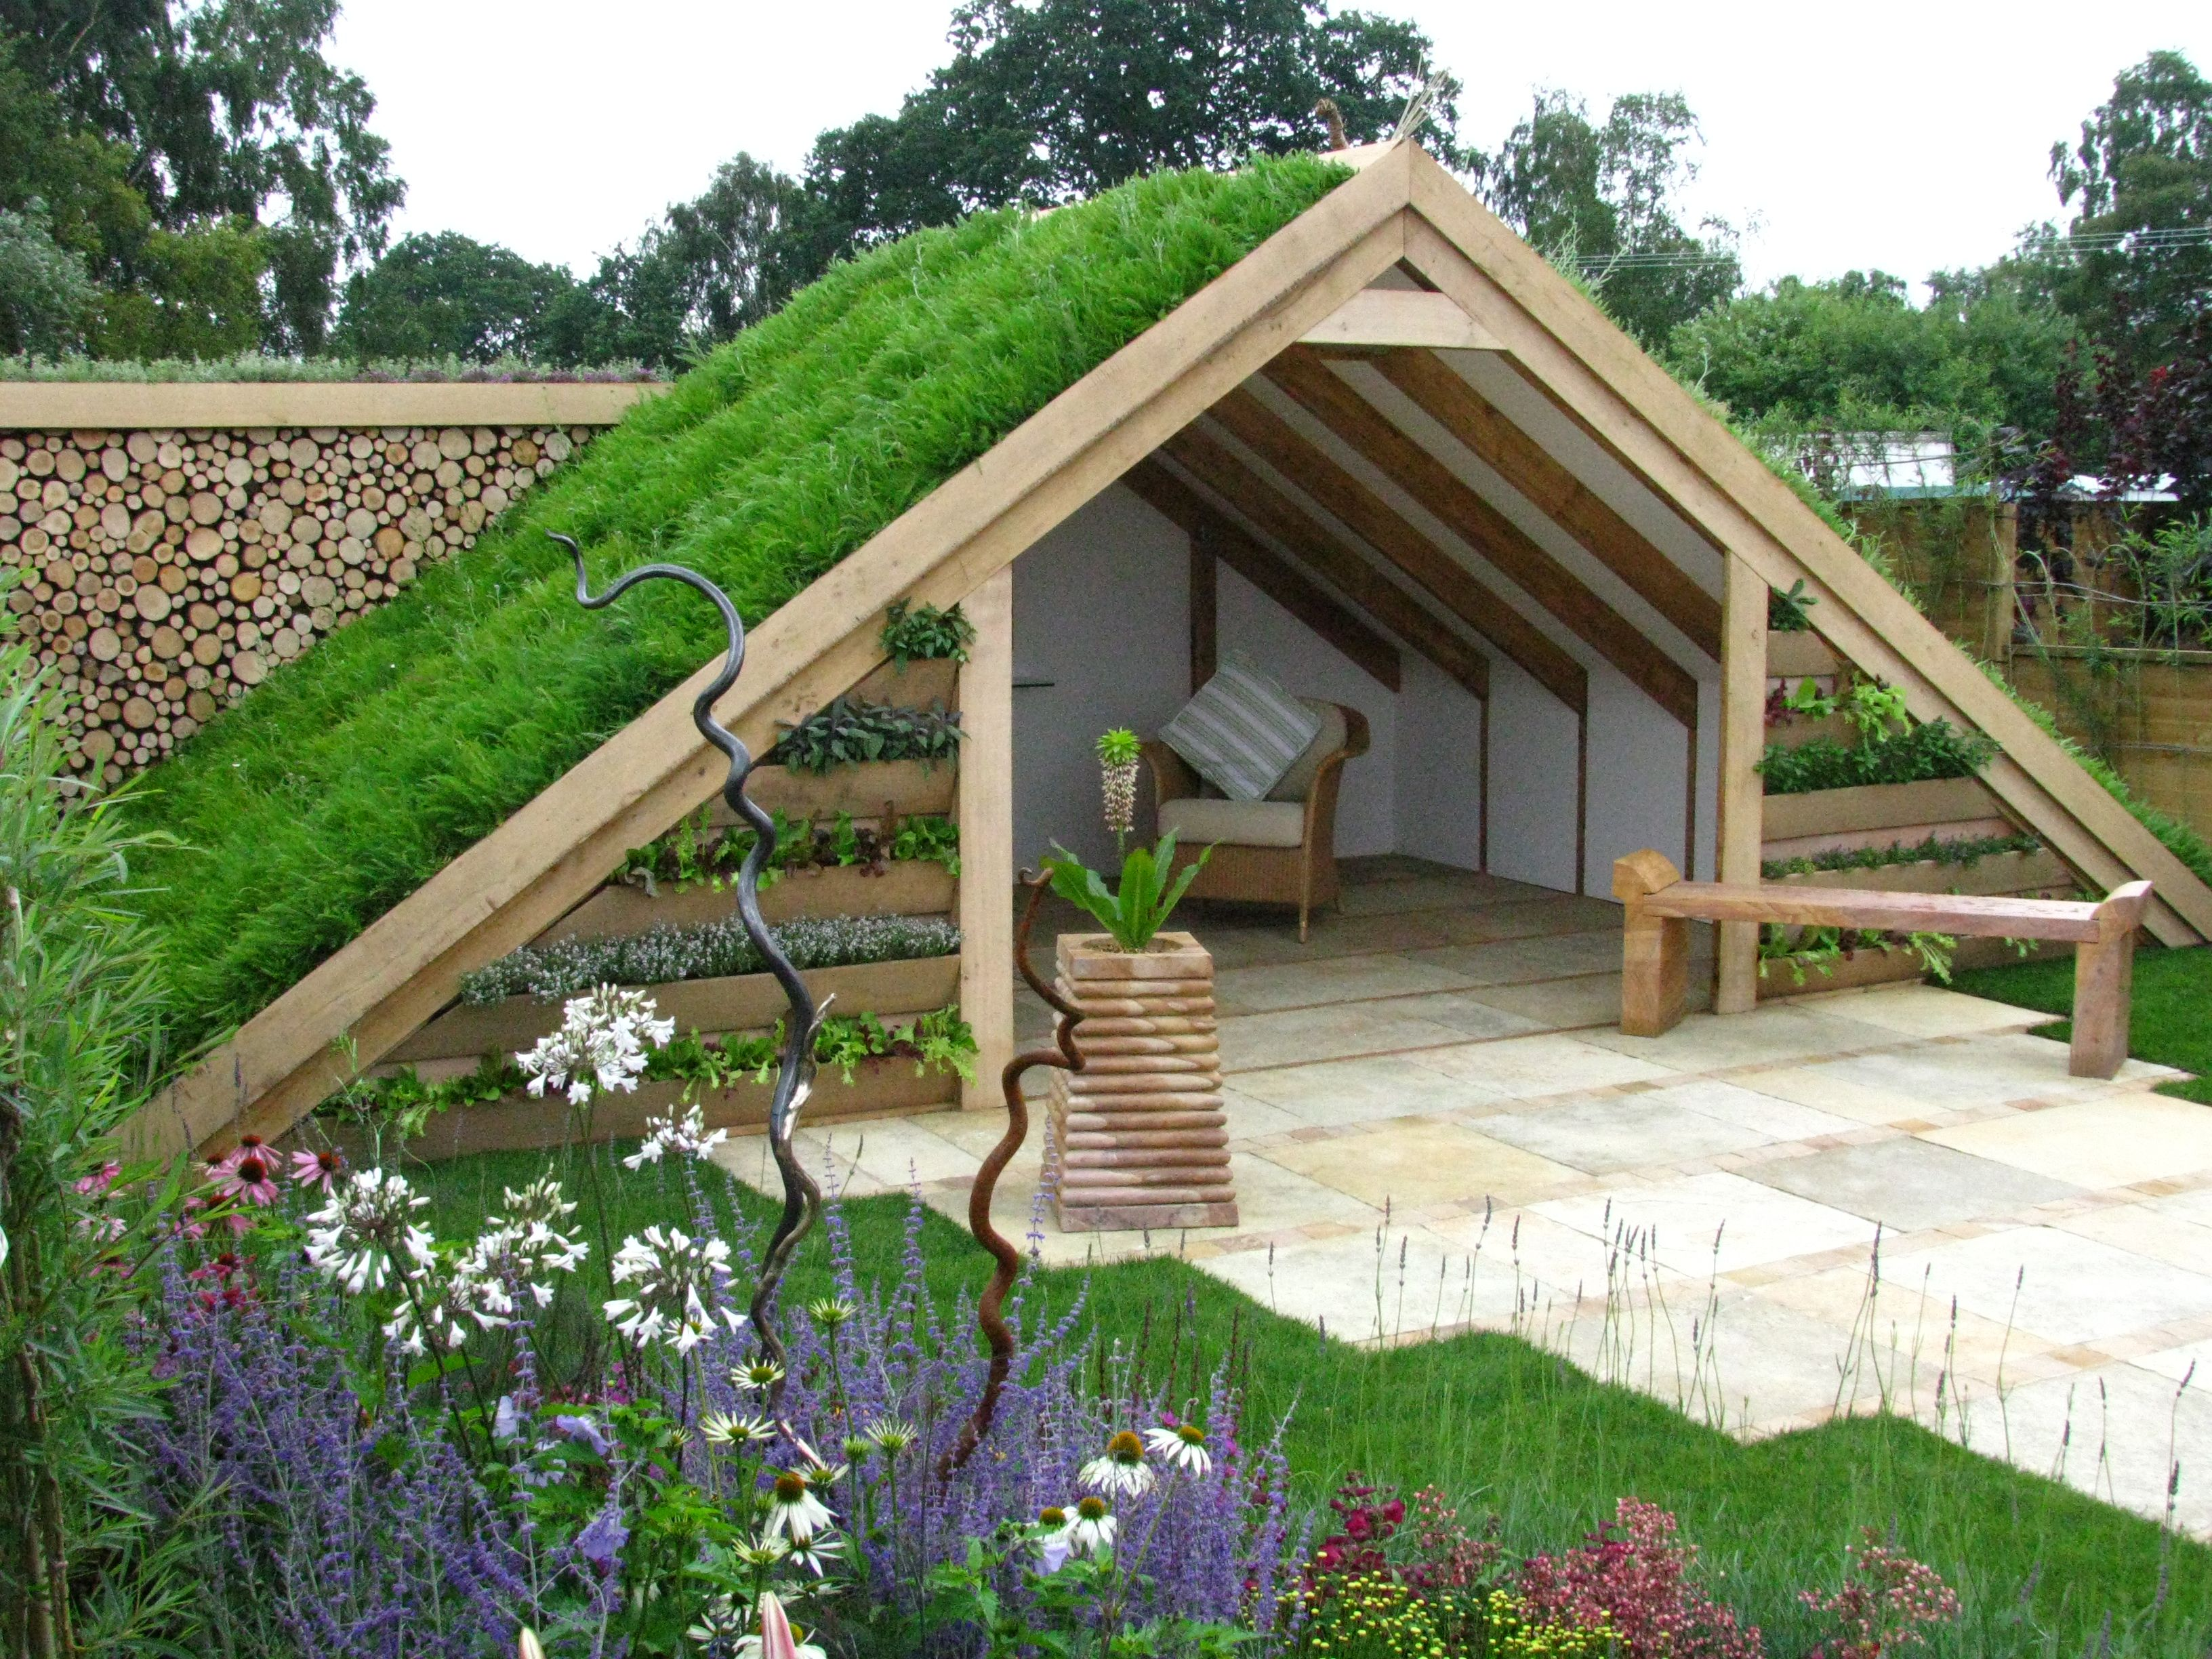 Garden Designe how to decorate the garden in an amazing way Green Roof Shed At Chasewater Innovation Centre Brownhills Staffordshire Uk Photo Shed Designgarden